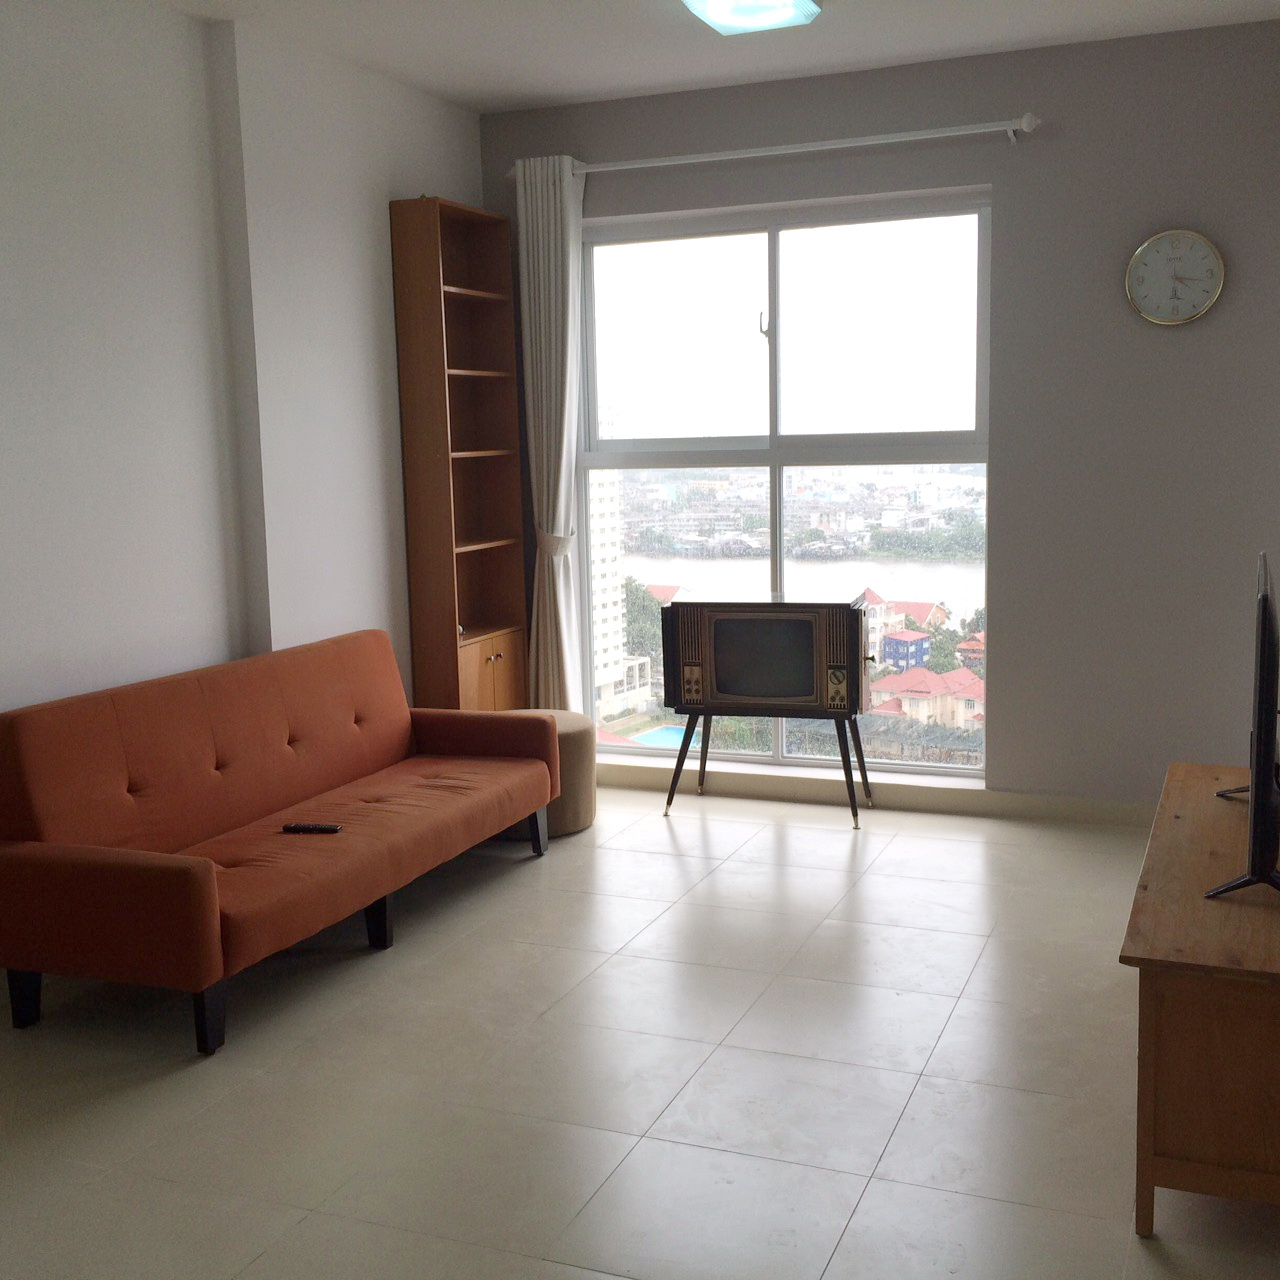 Apartments For Rent By School District: Thu Thiem Sky Apartment For Rent In Thao Dien, District 2